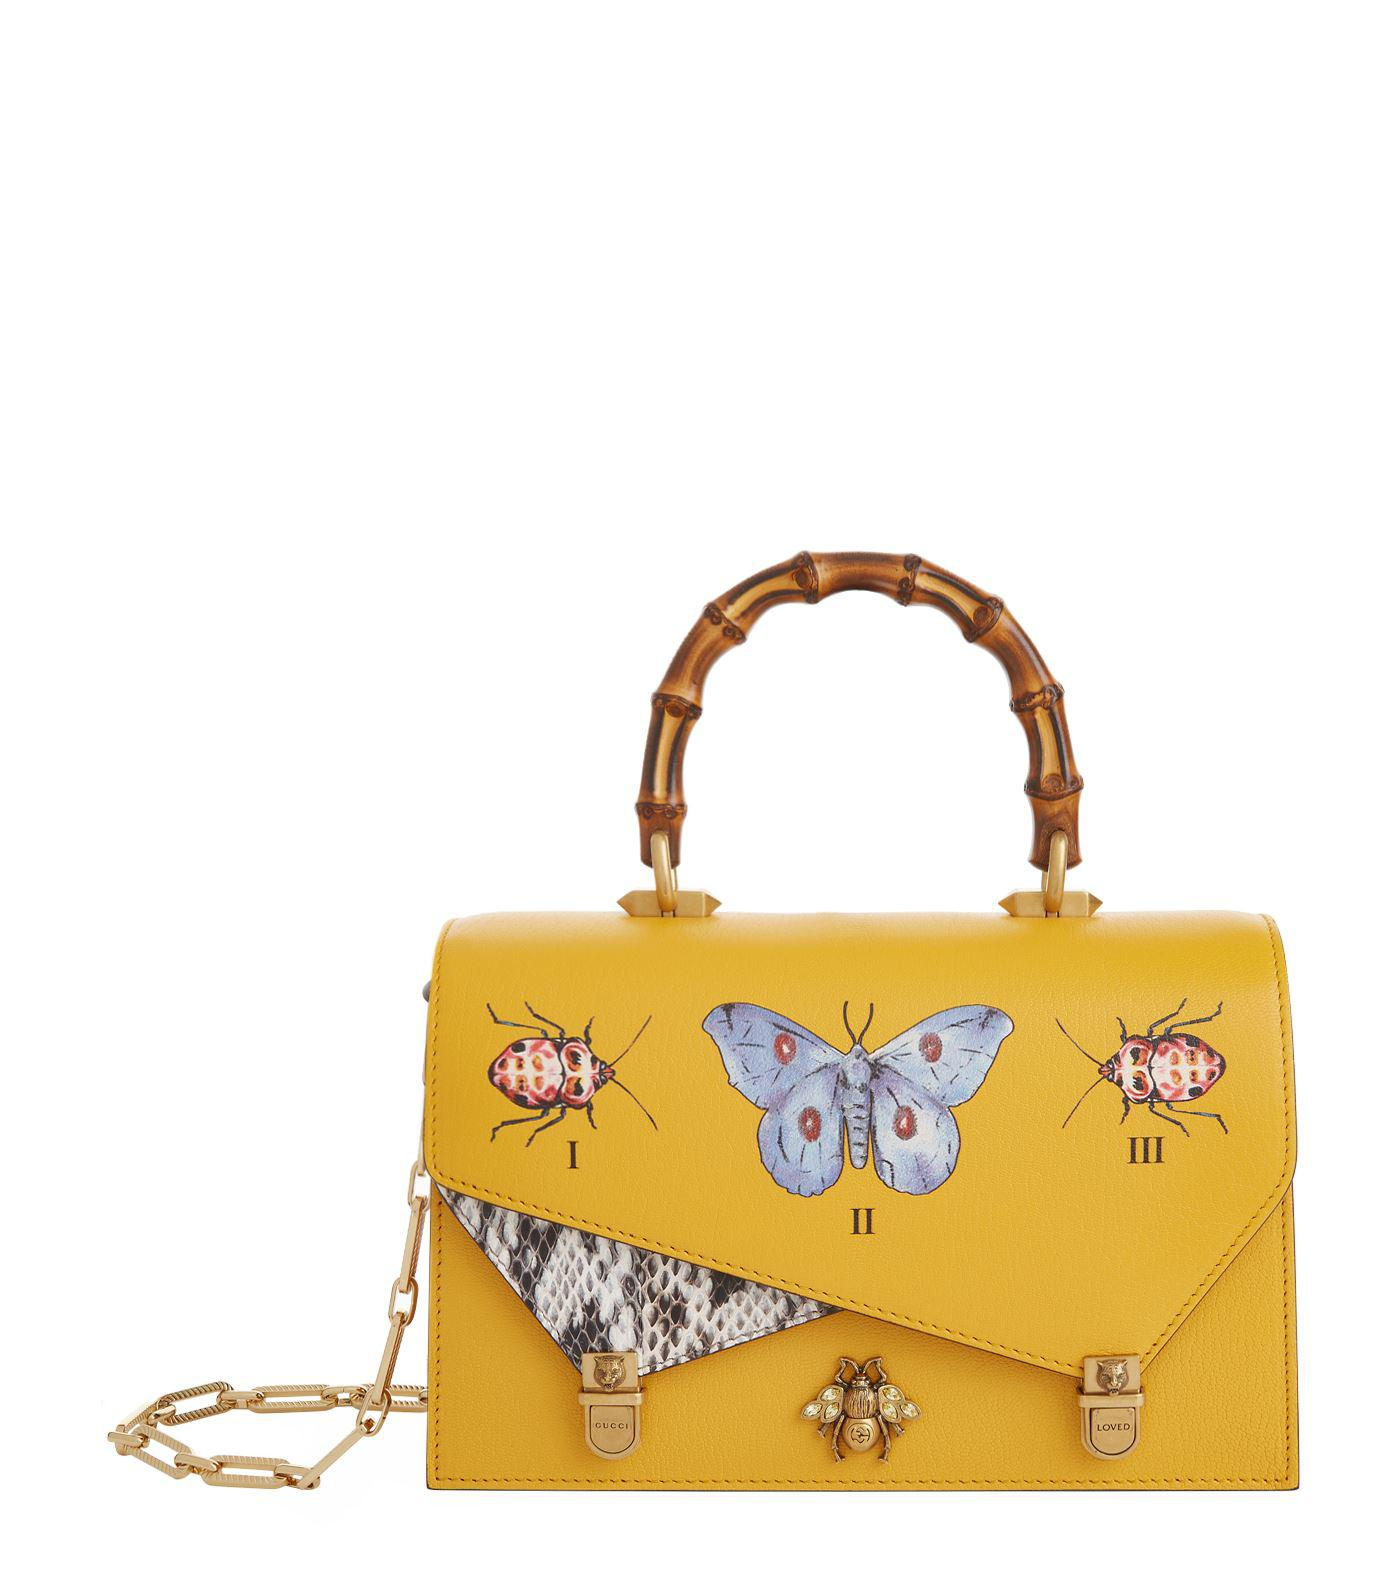 79e4ecd445ae Gucci Ottilia Butterfly Top Handle Bag in Yellow - Lyst